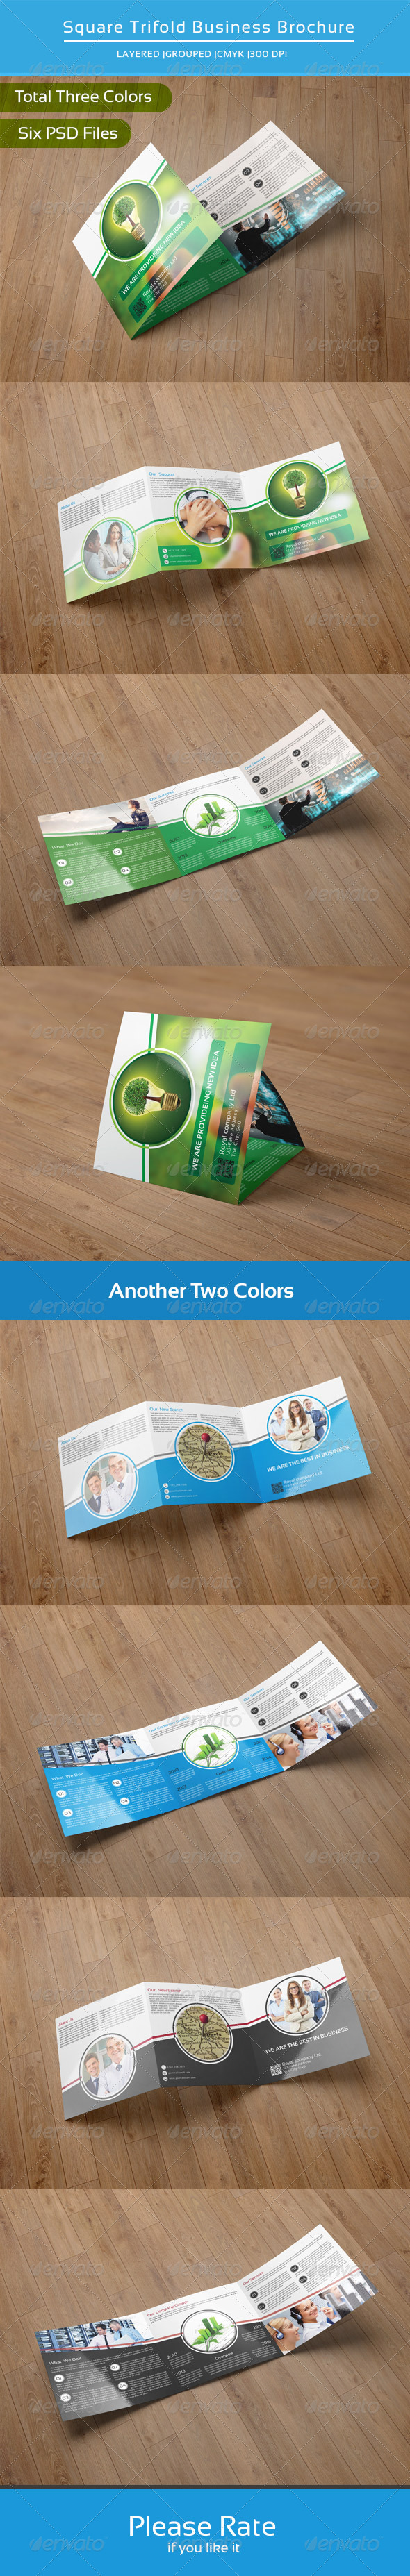 GraphicRiver Square Trifold Business Brochure-V15 8304679